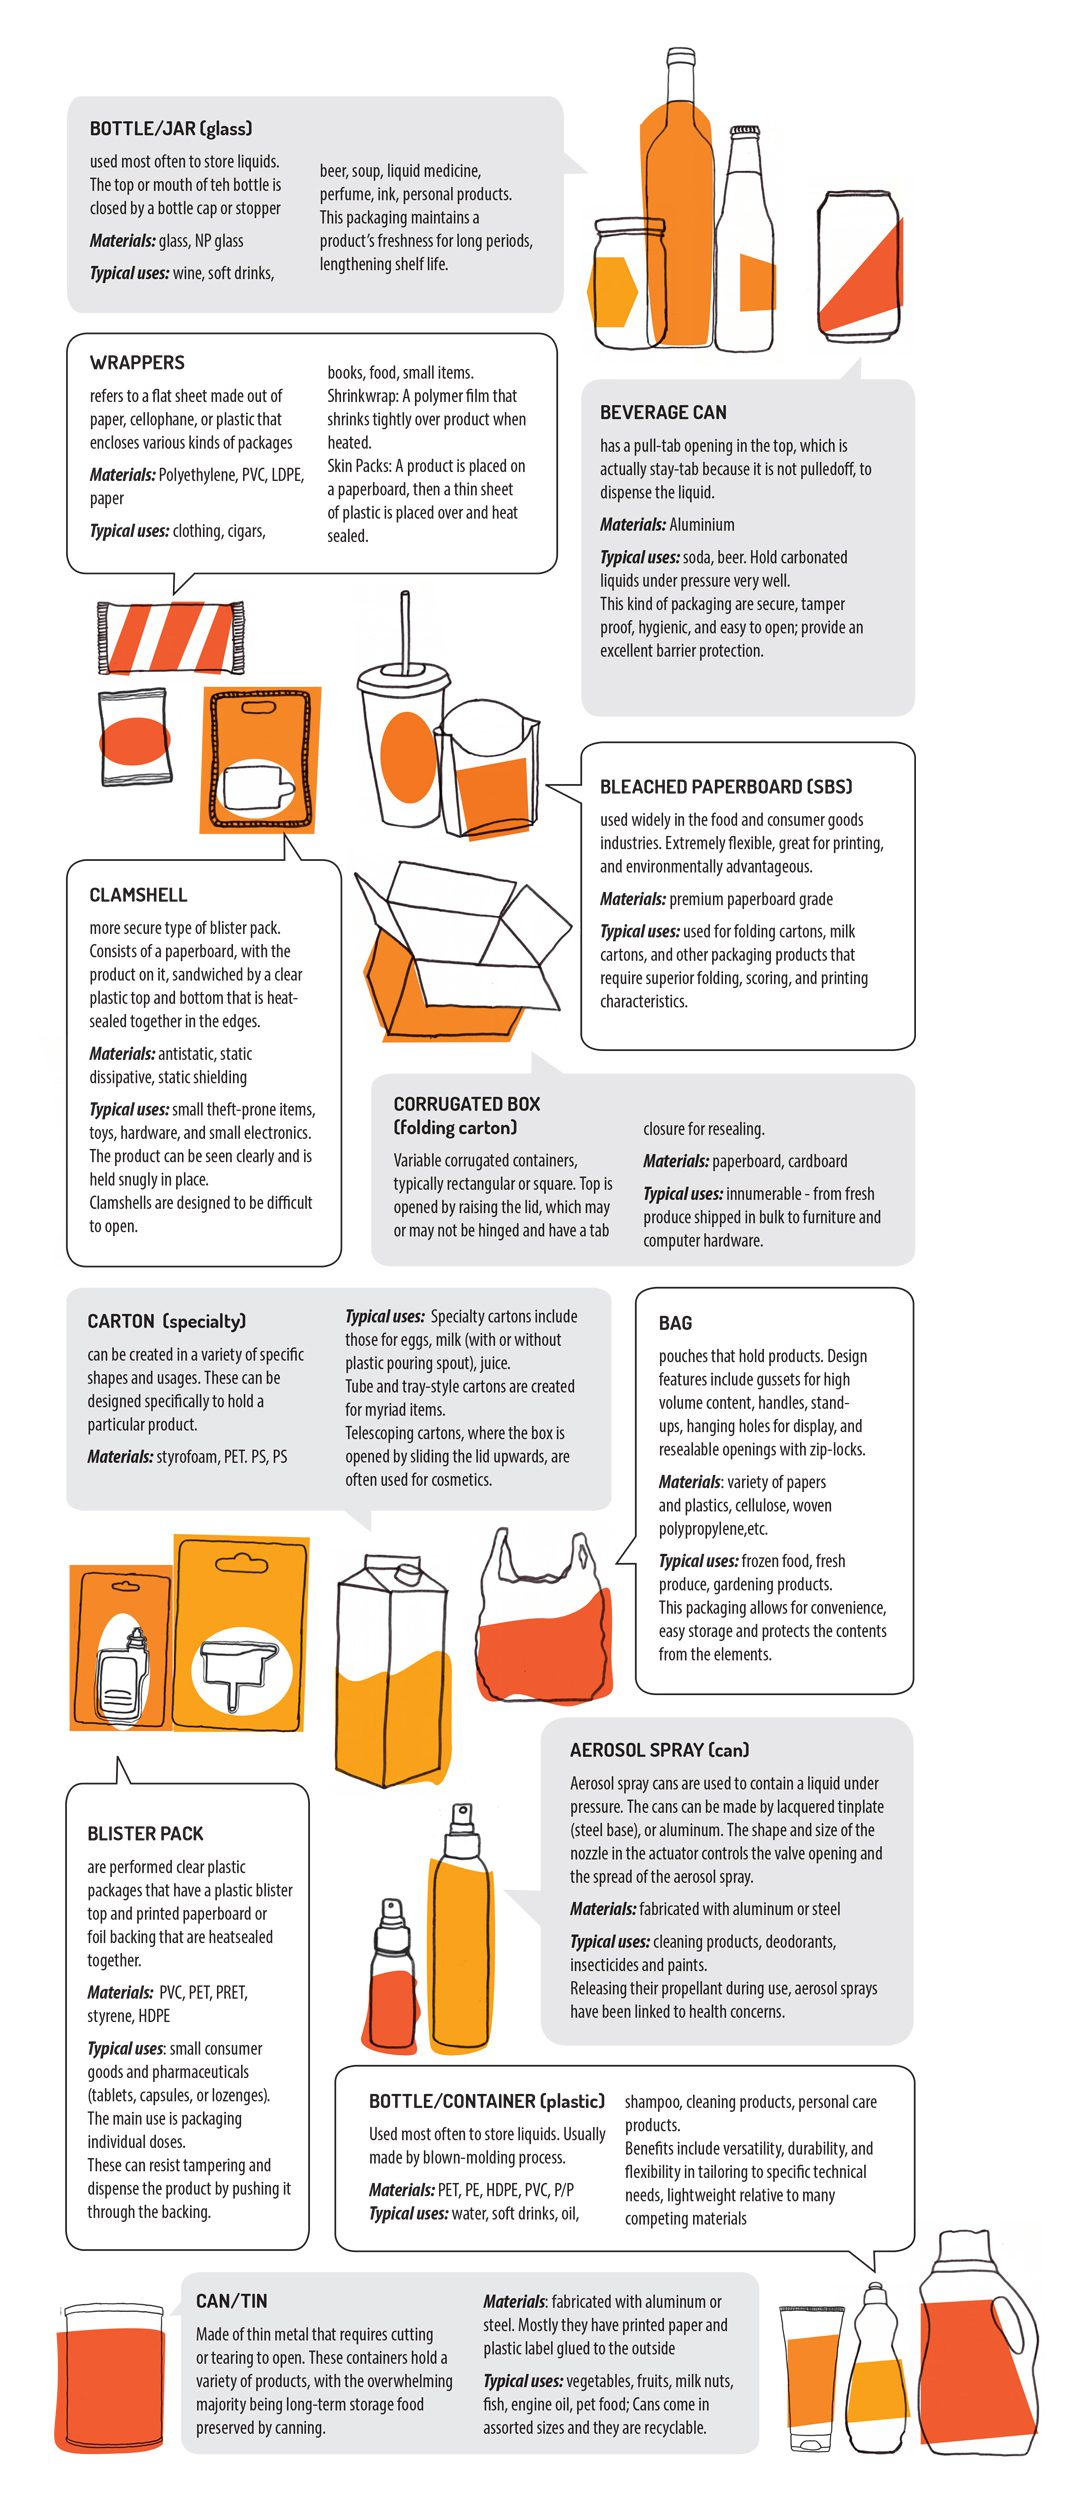 types of packaging commonly seen